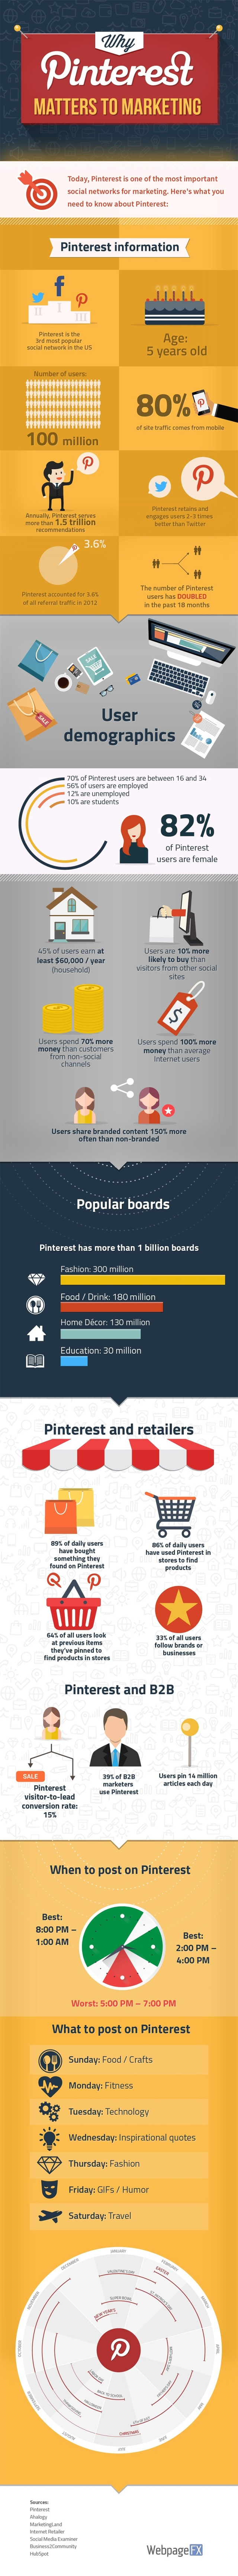 Why Pinterest Should be a Key Part of Your Social Media Strategy in 2016